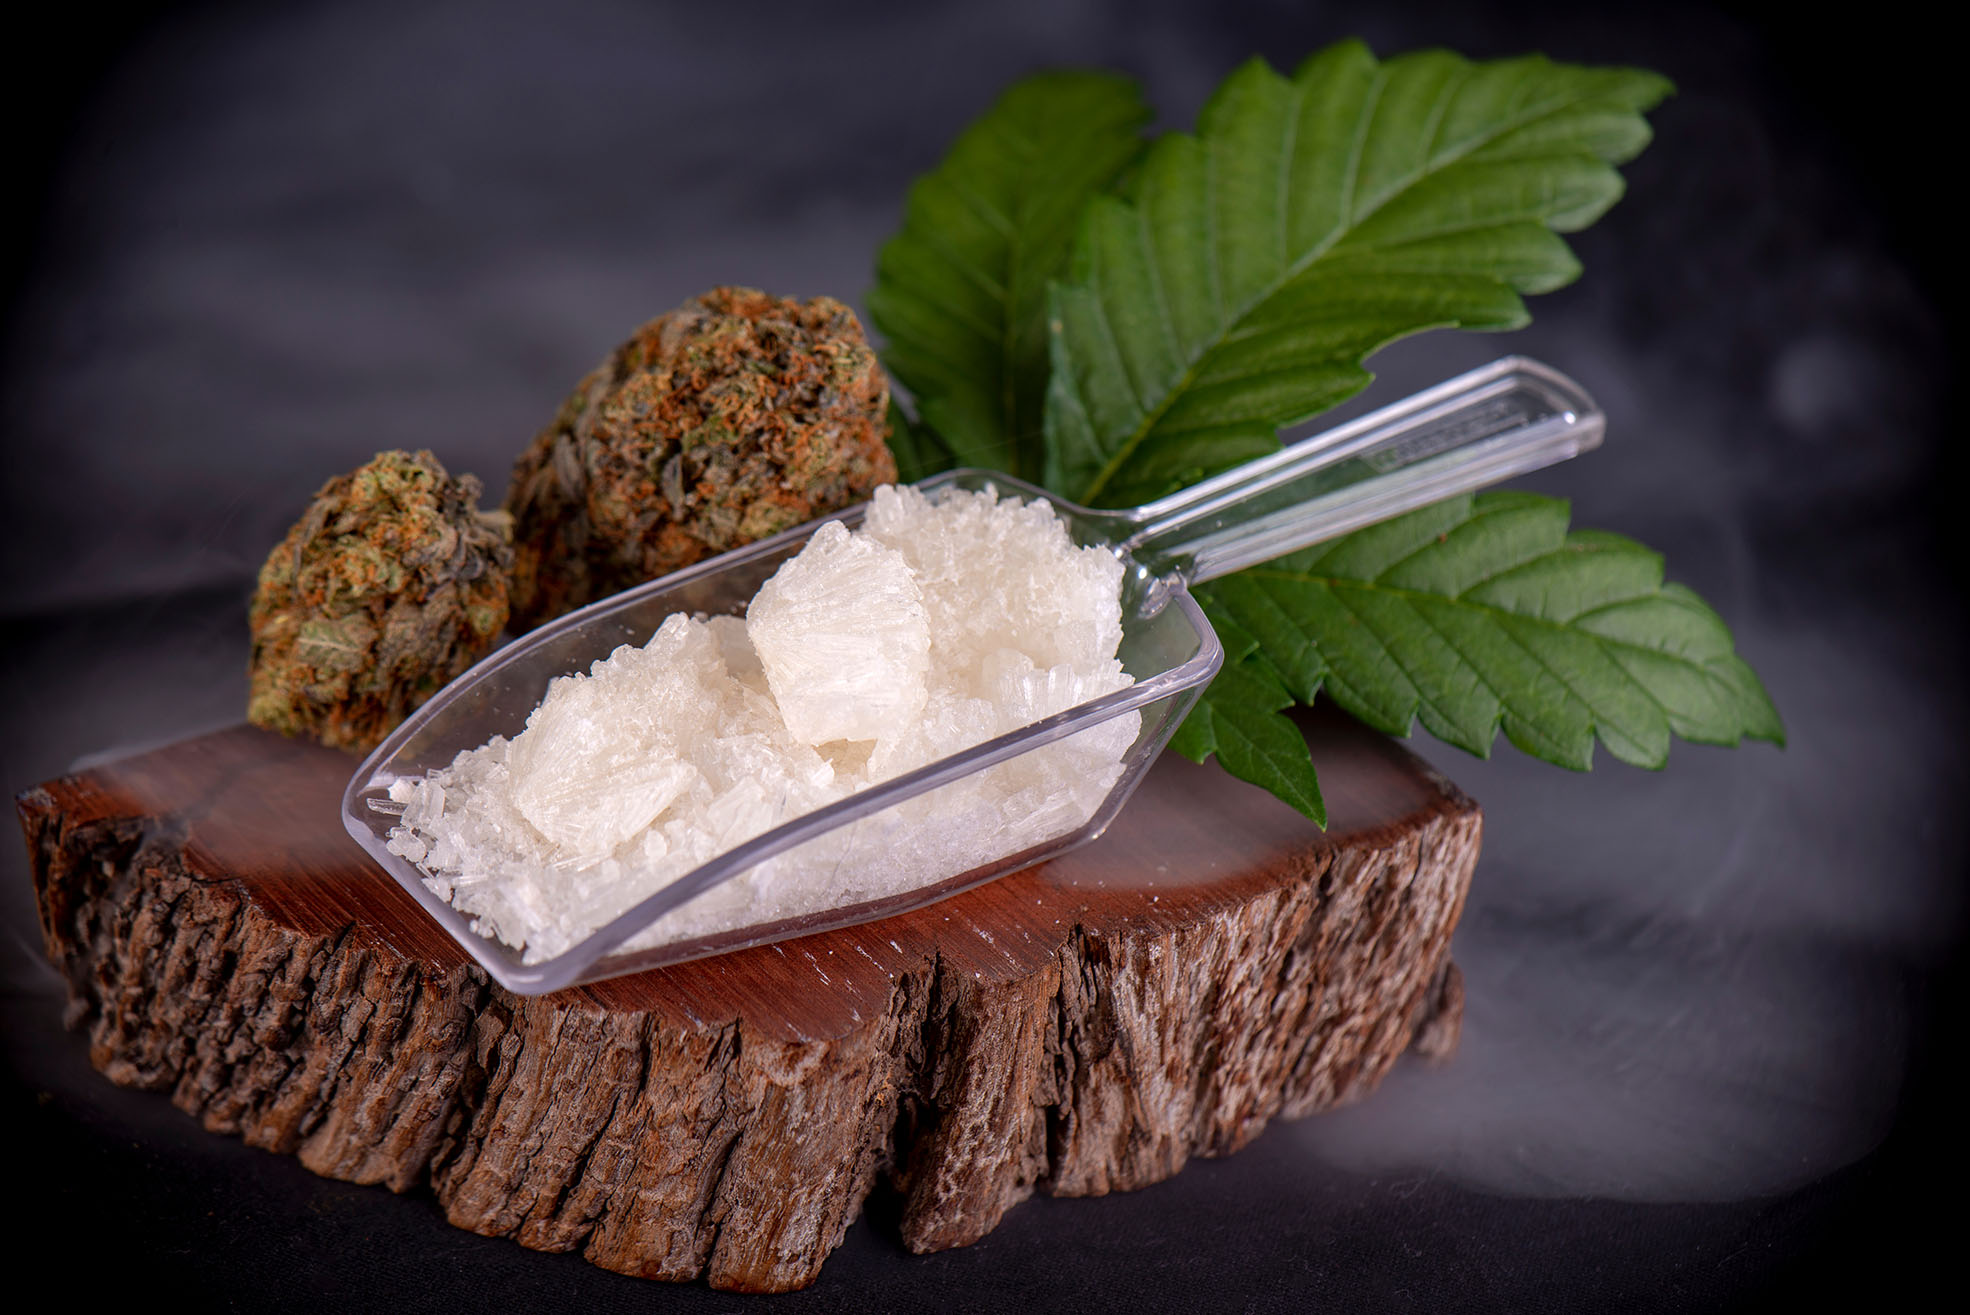 Few Popular Tasty Recipes Involving the Goodness of CBD Isolate